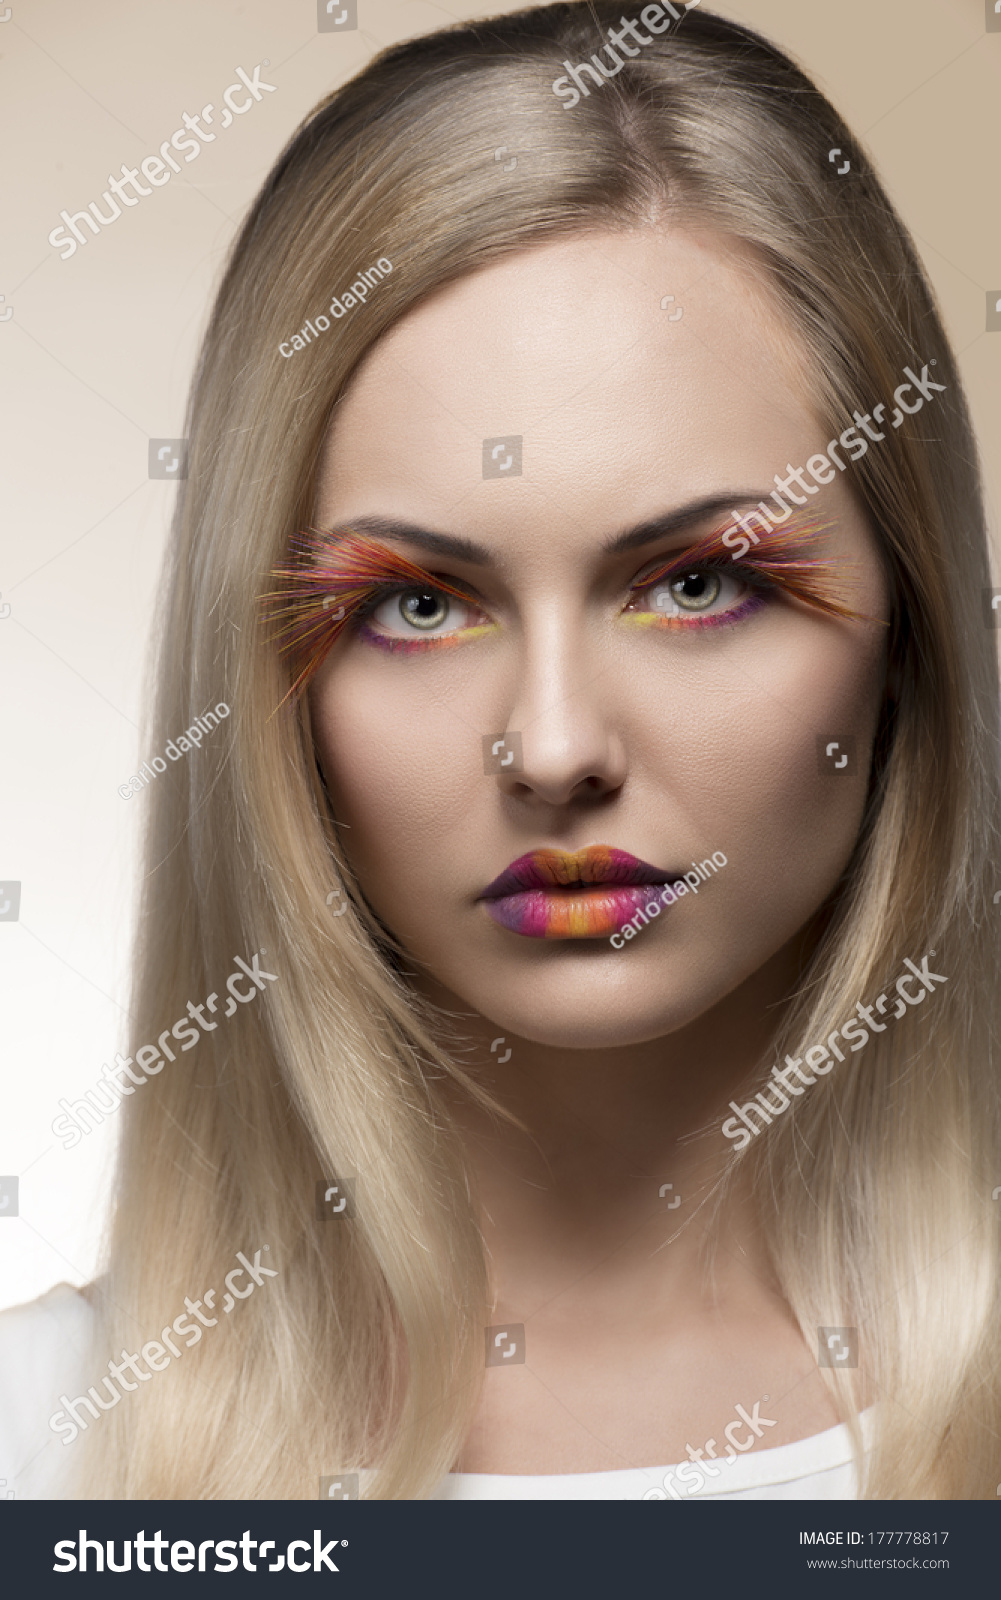 Cute Blonde Woman Posing In Beauty Close Up Shoot With Colorful Make